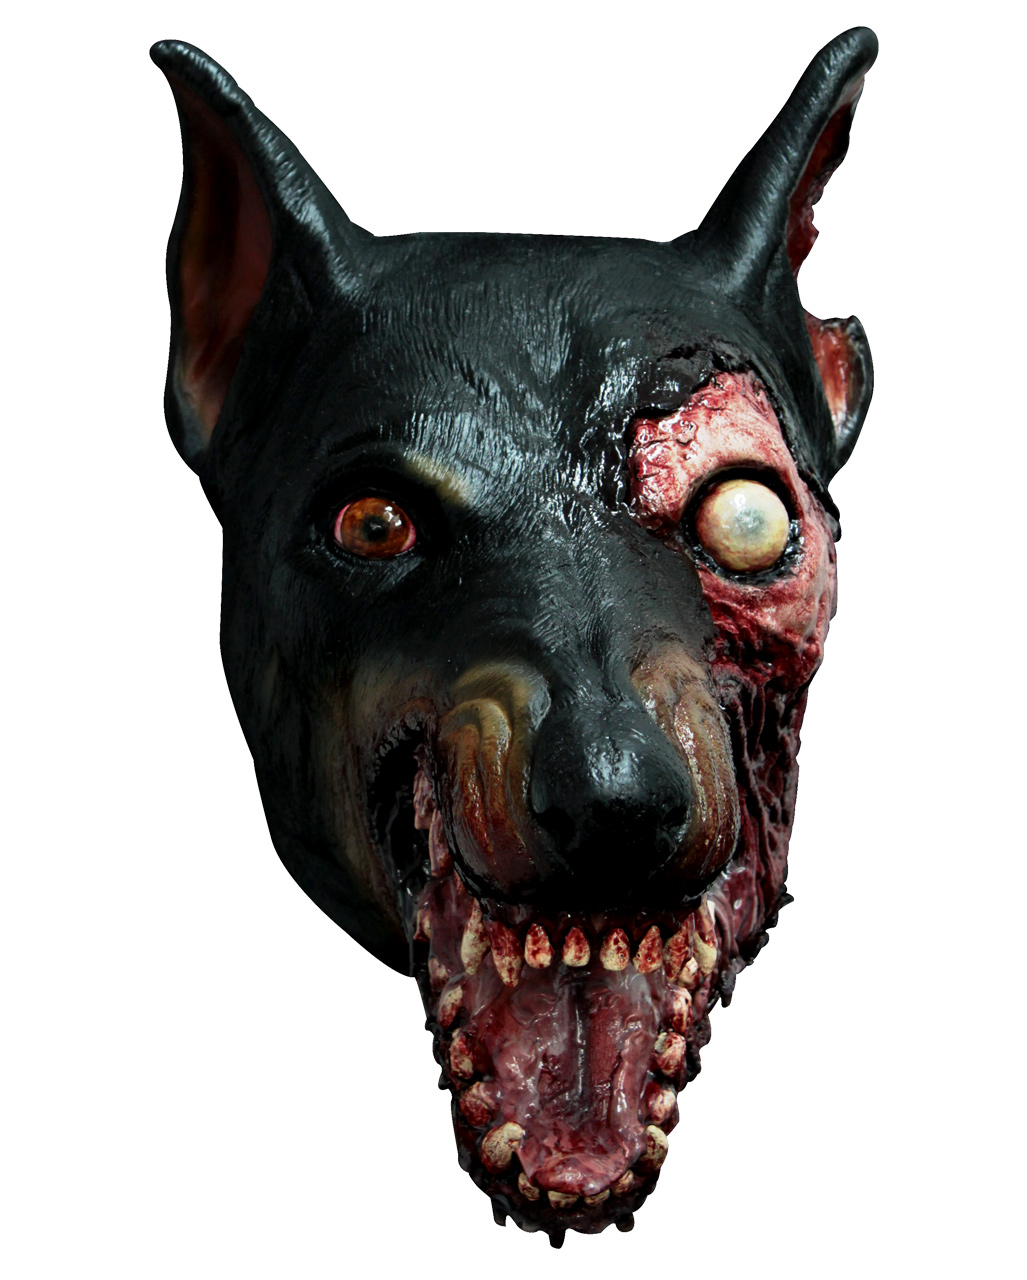 This creepy Dogit Zombie Fever Toy may look scary but dont worry its completely harmless and makes playtime with your pooch a unique and fun experience